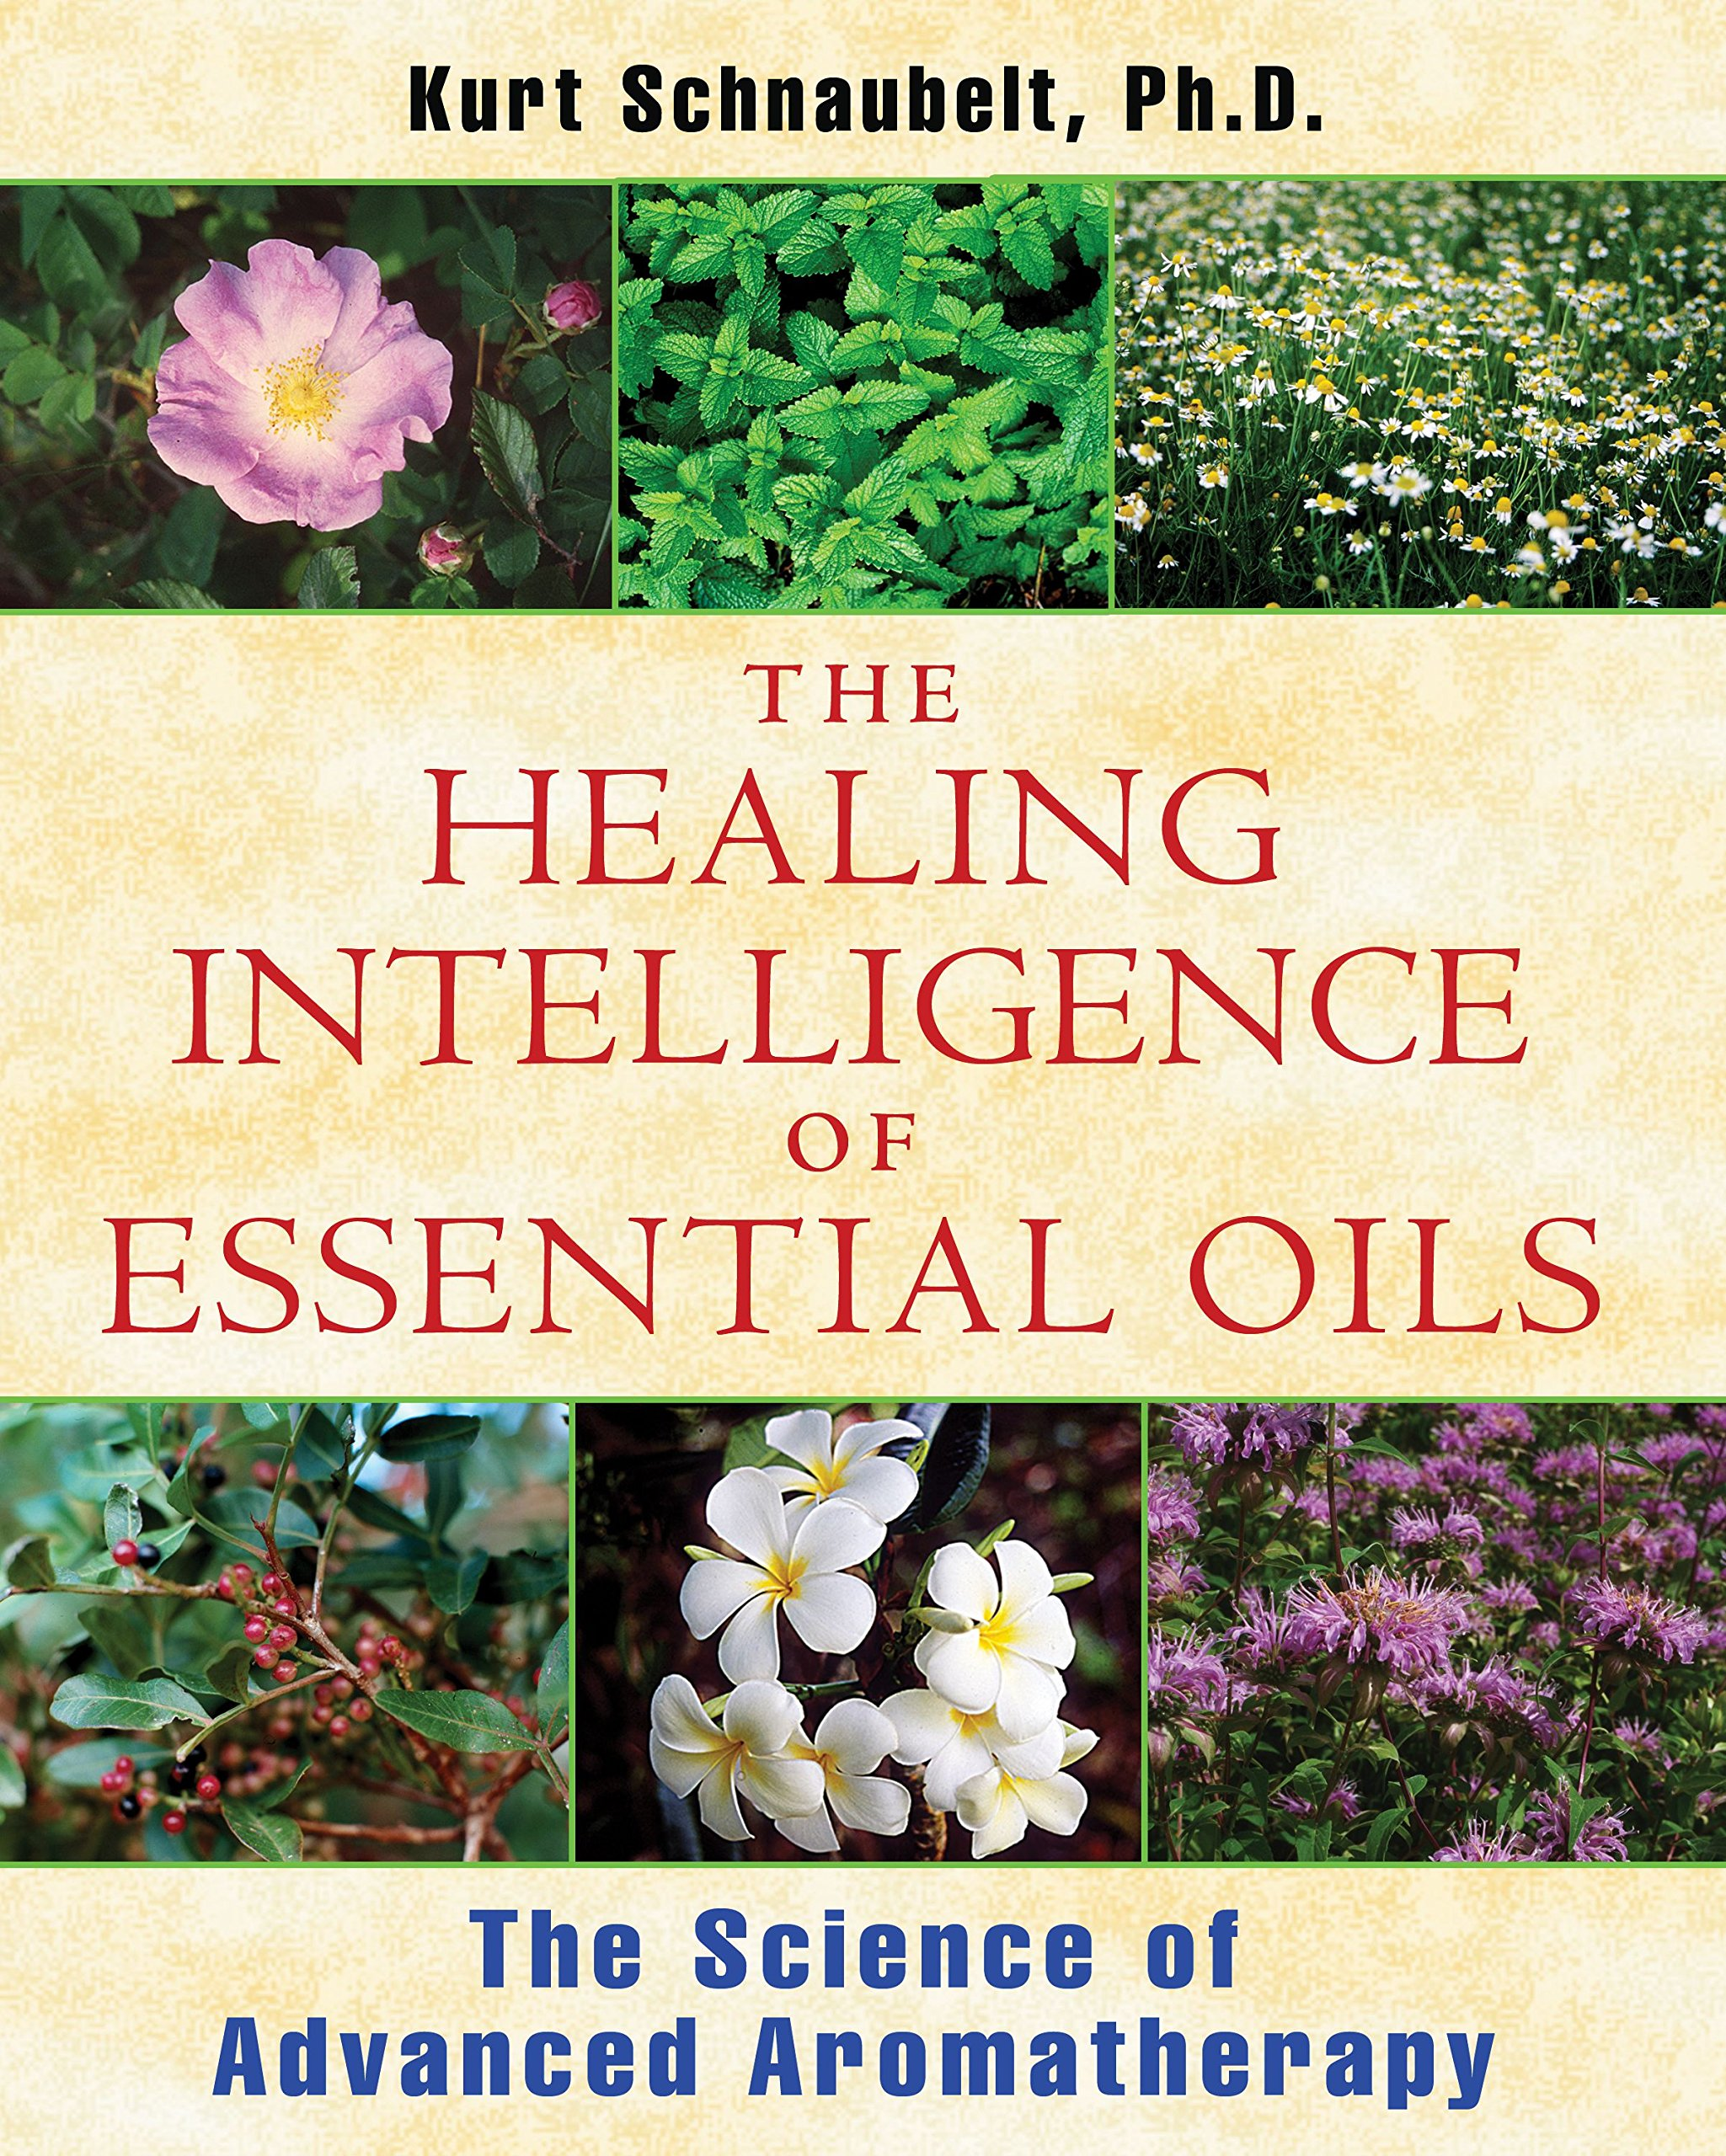 Healing Intelligence Essential Oils Aromatherapy product image